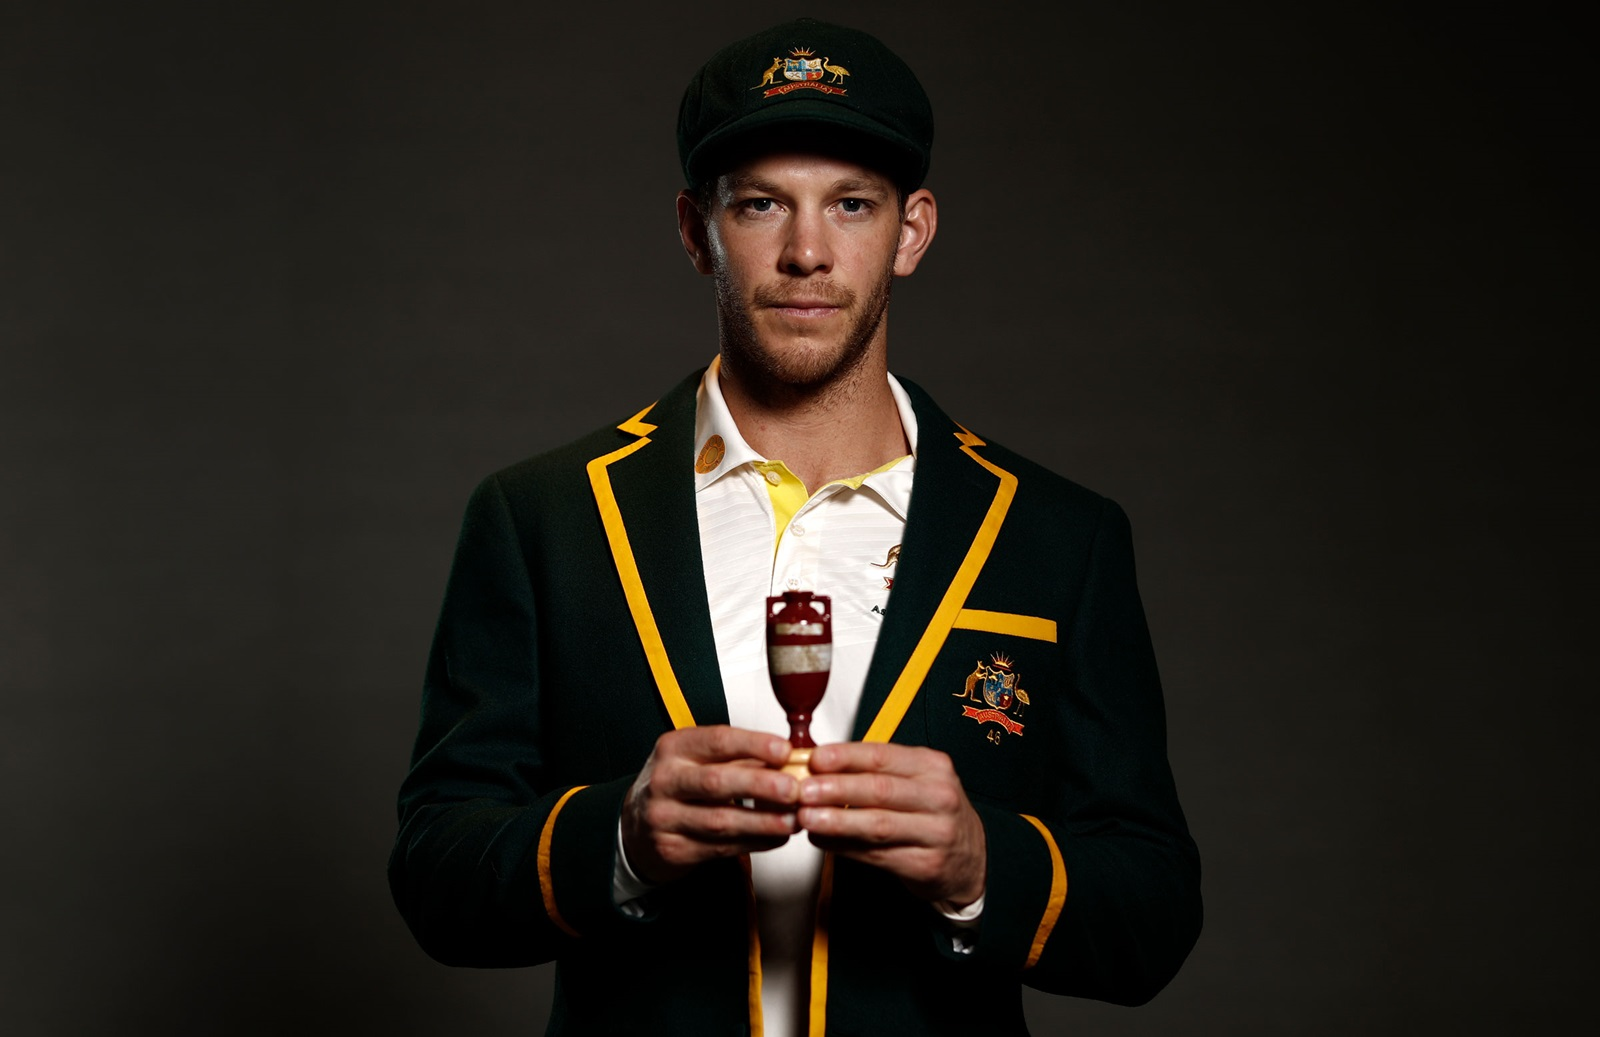 Click on the image above of Tim Paine with 'The Ashes' for the full press conference details of both captains